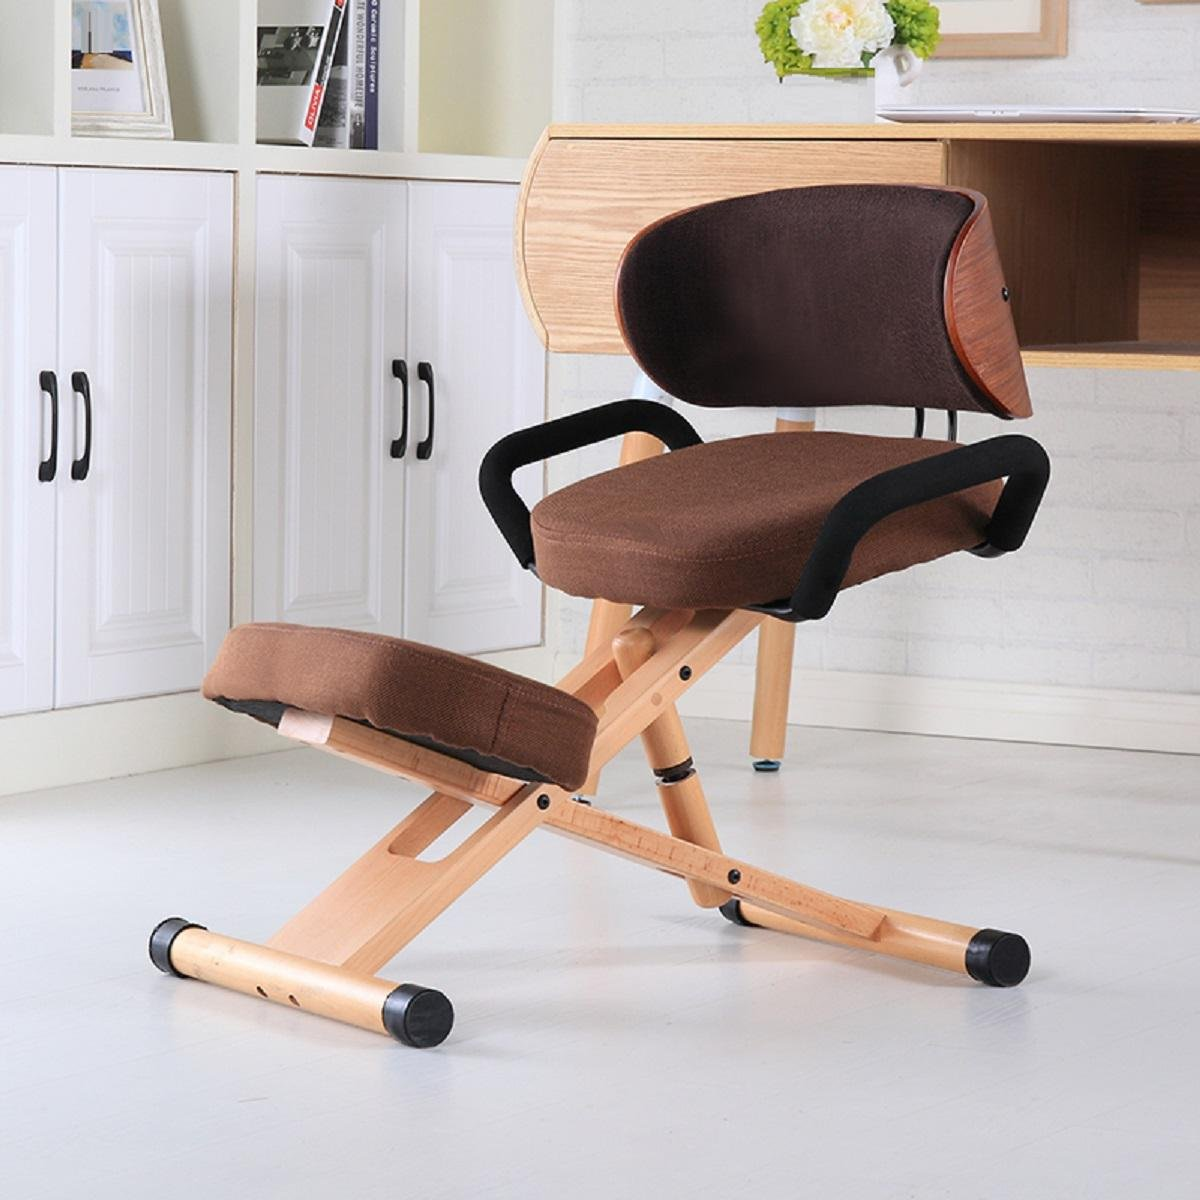 GAOJIAN Modern Ergonomic Kneeling Chair with Back and Handle Office Furniture Chair Height Adjustable Wood Office Kneeling Posture Chair by GAOJIAN